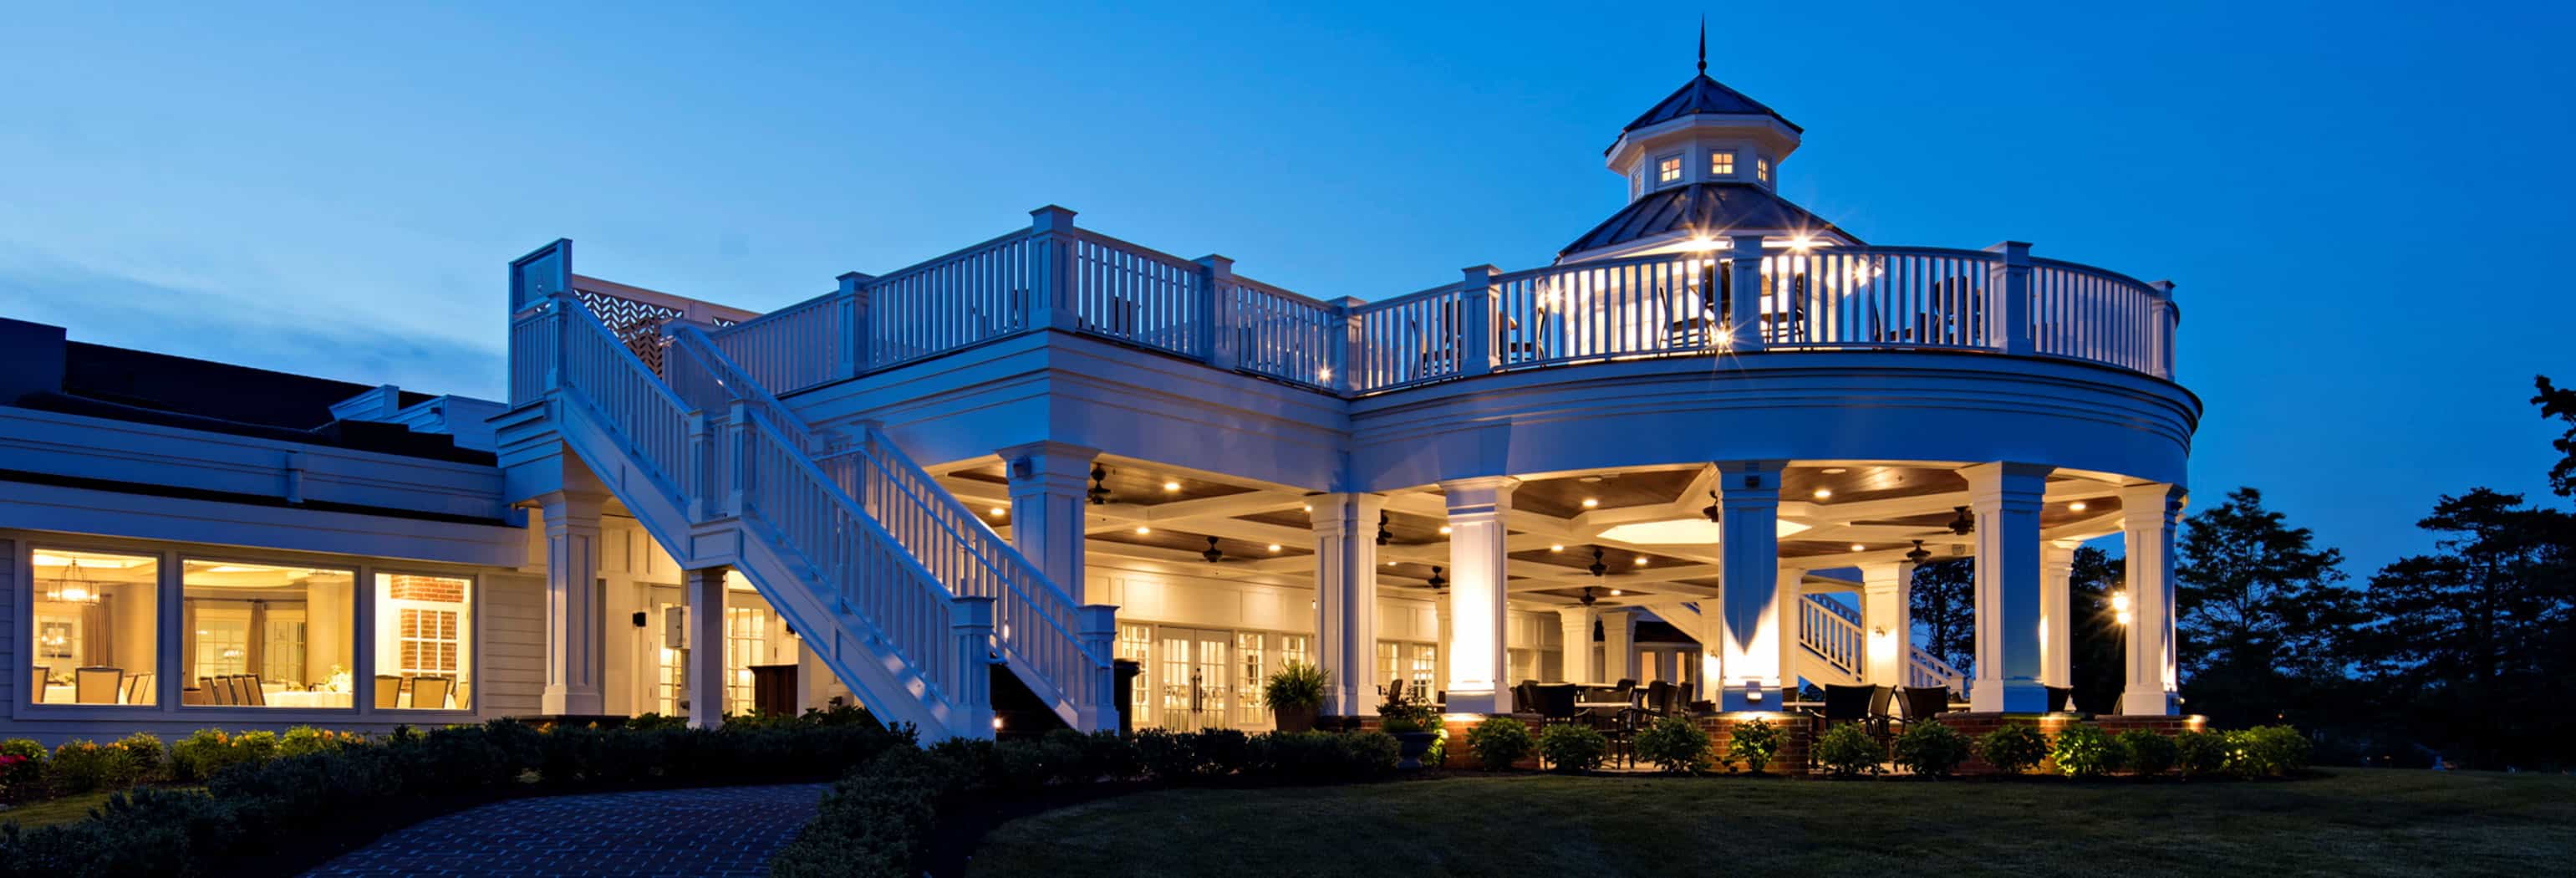 atlantic city country clubs team of wedding professionals are here to assist you in making your wedding event a dream come true